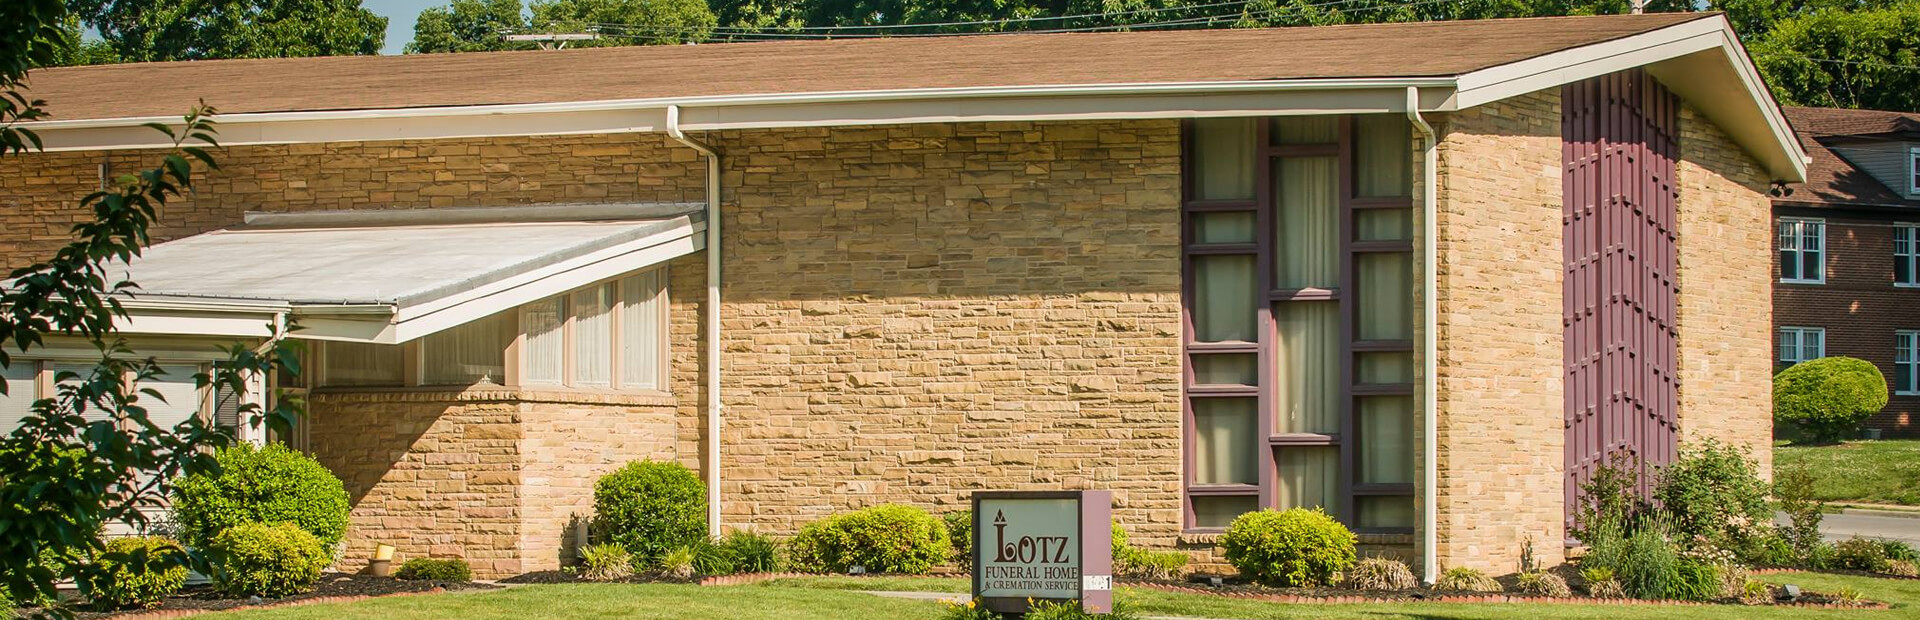 Lotz Funeral Home in Roanoke, VA